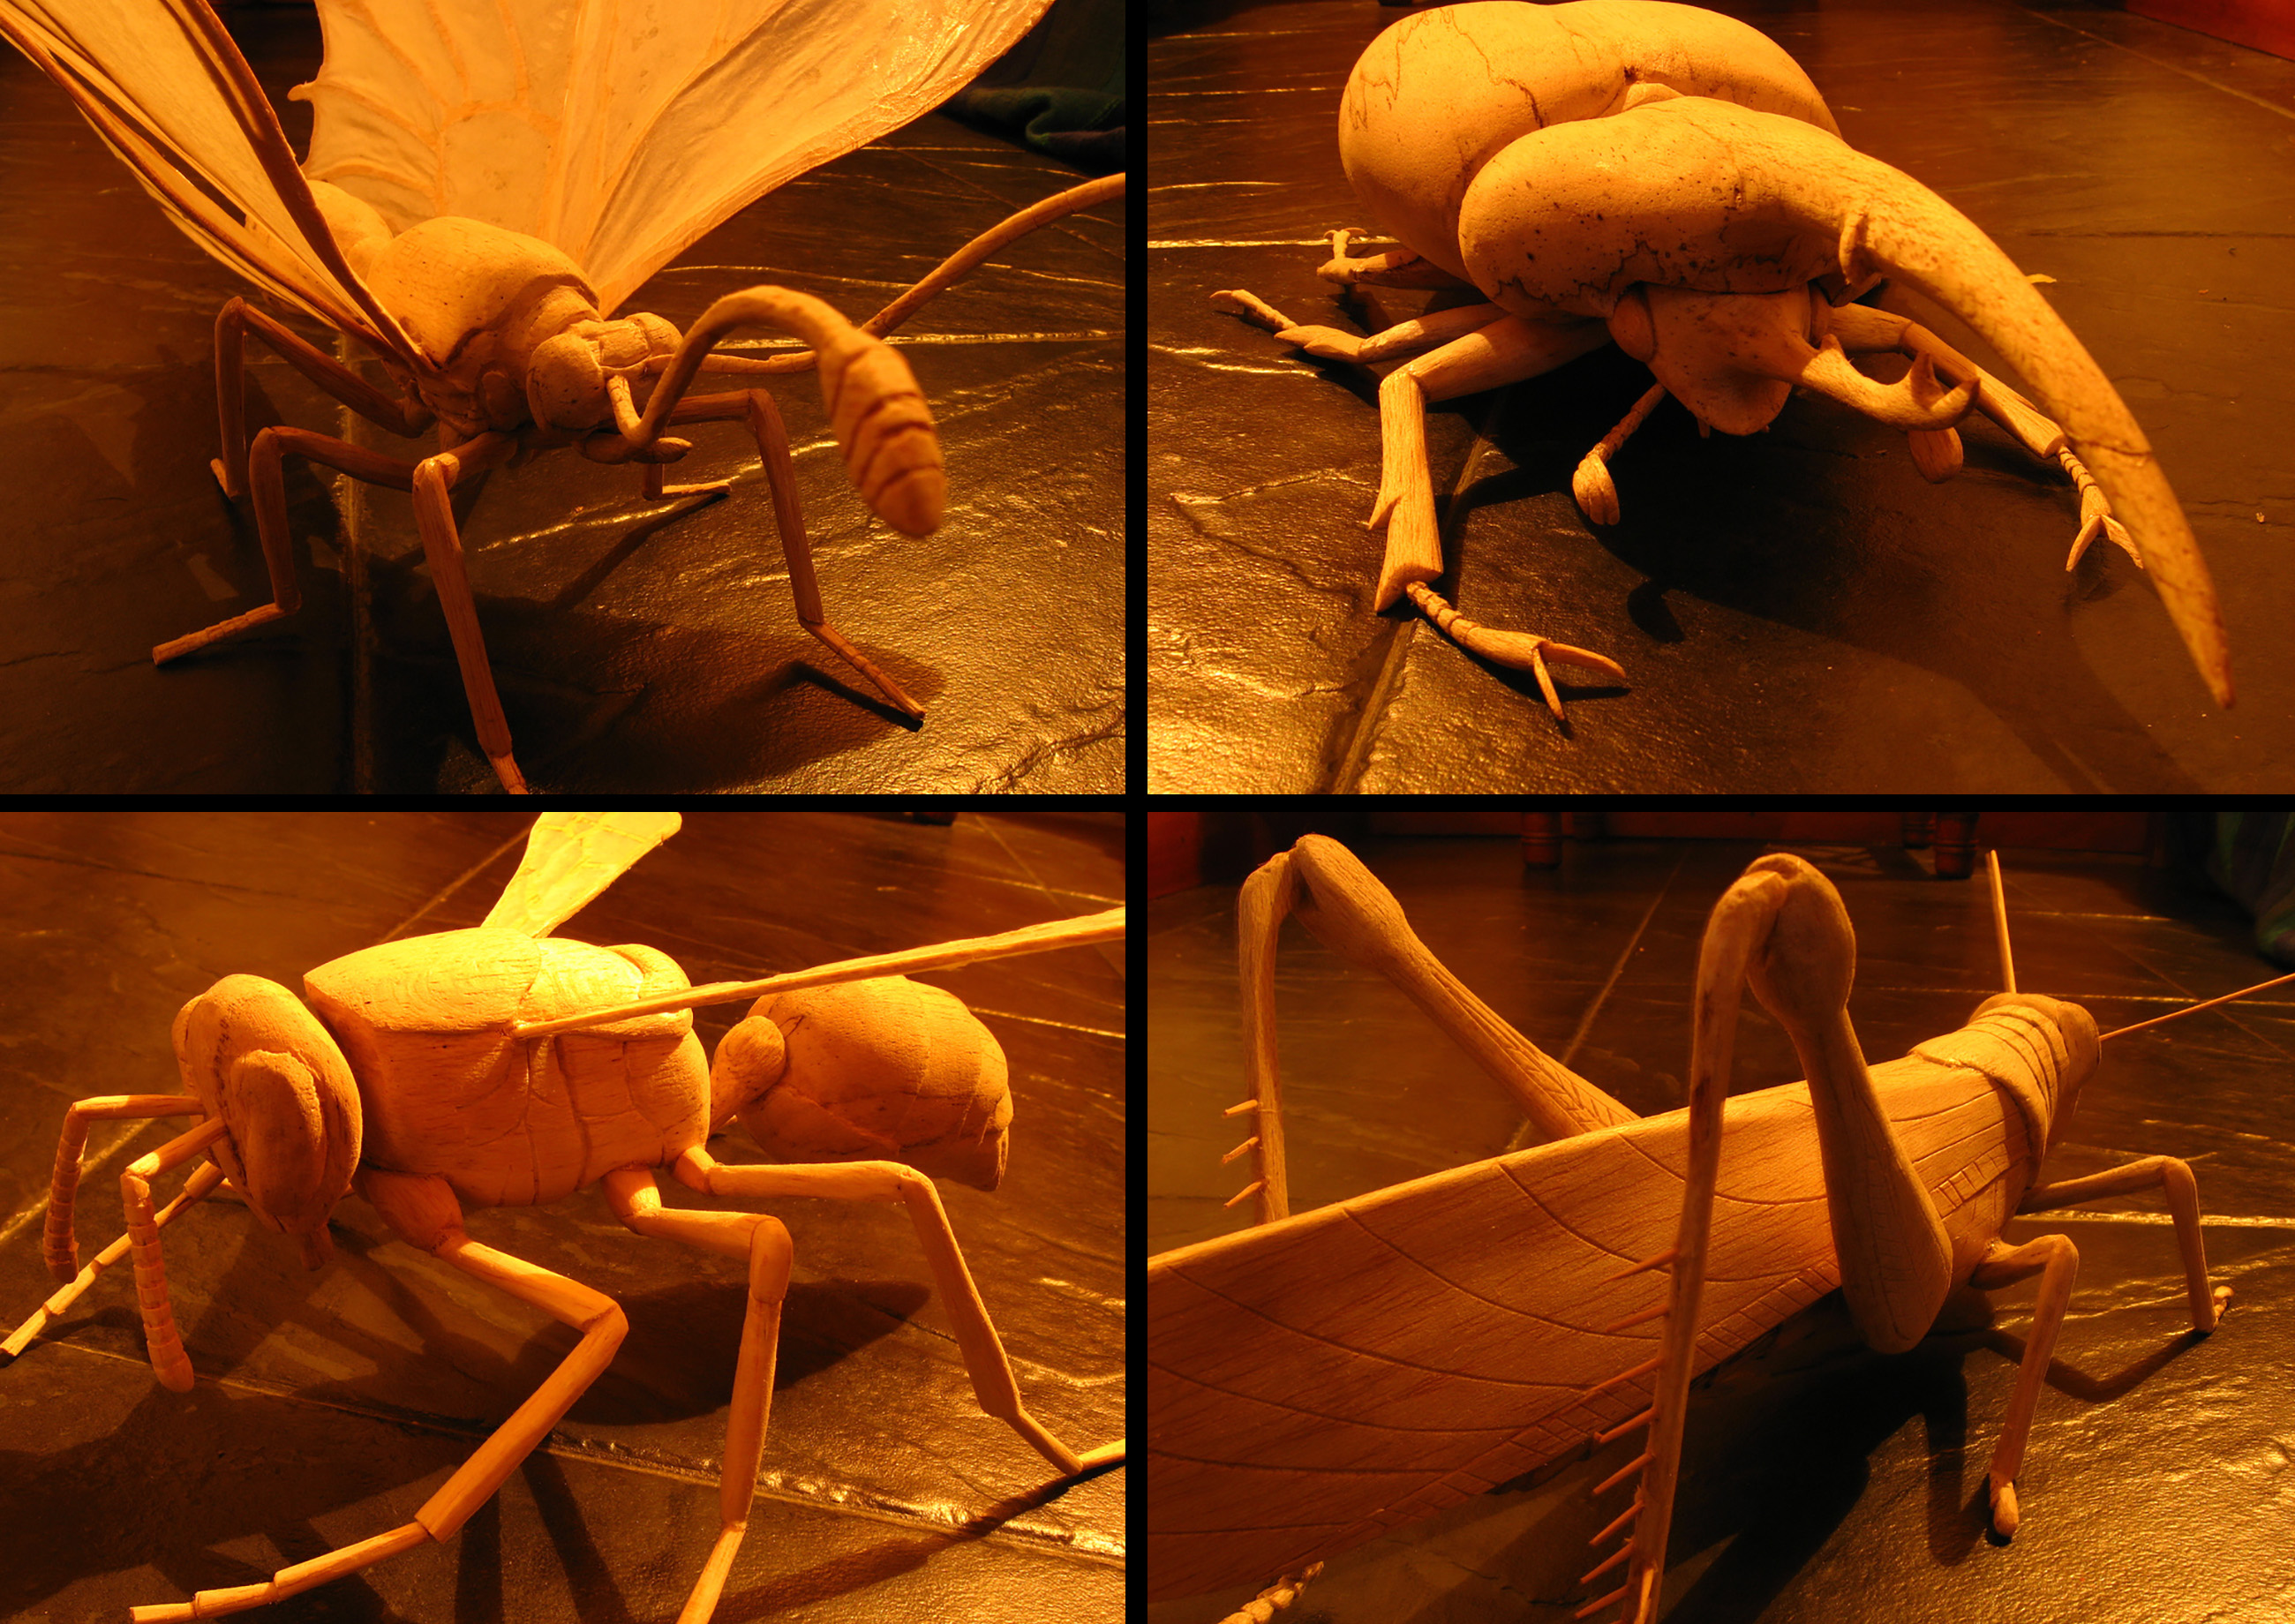 Insect sculptures by Duke biologist Alejandro Berrio.